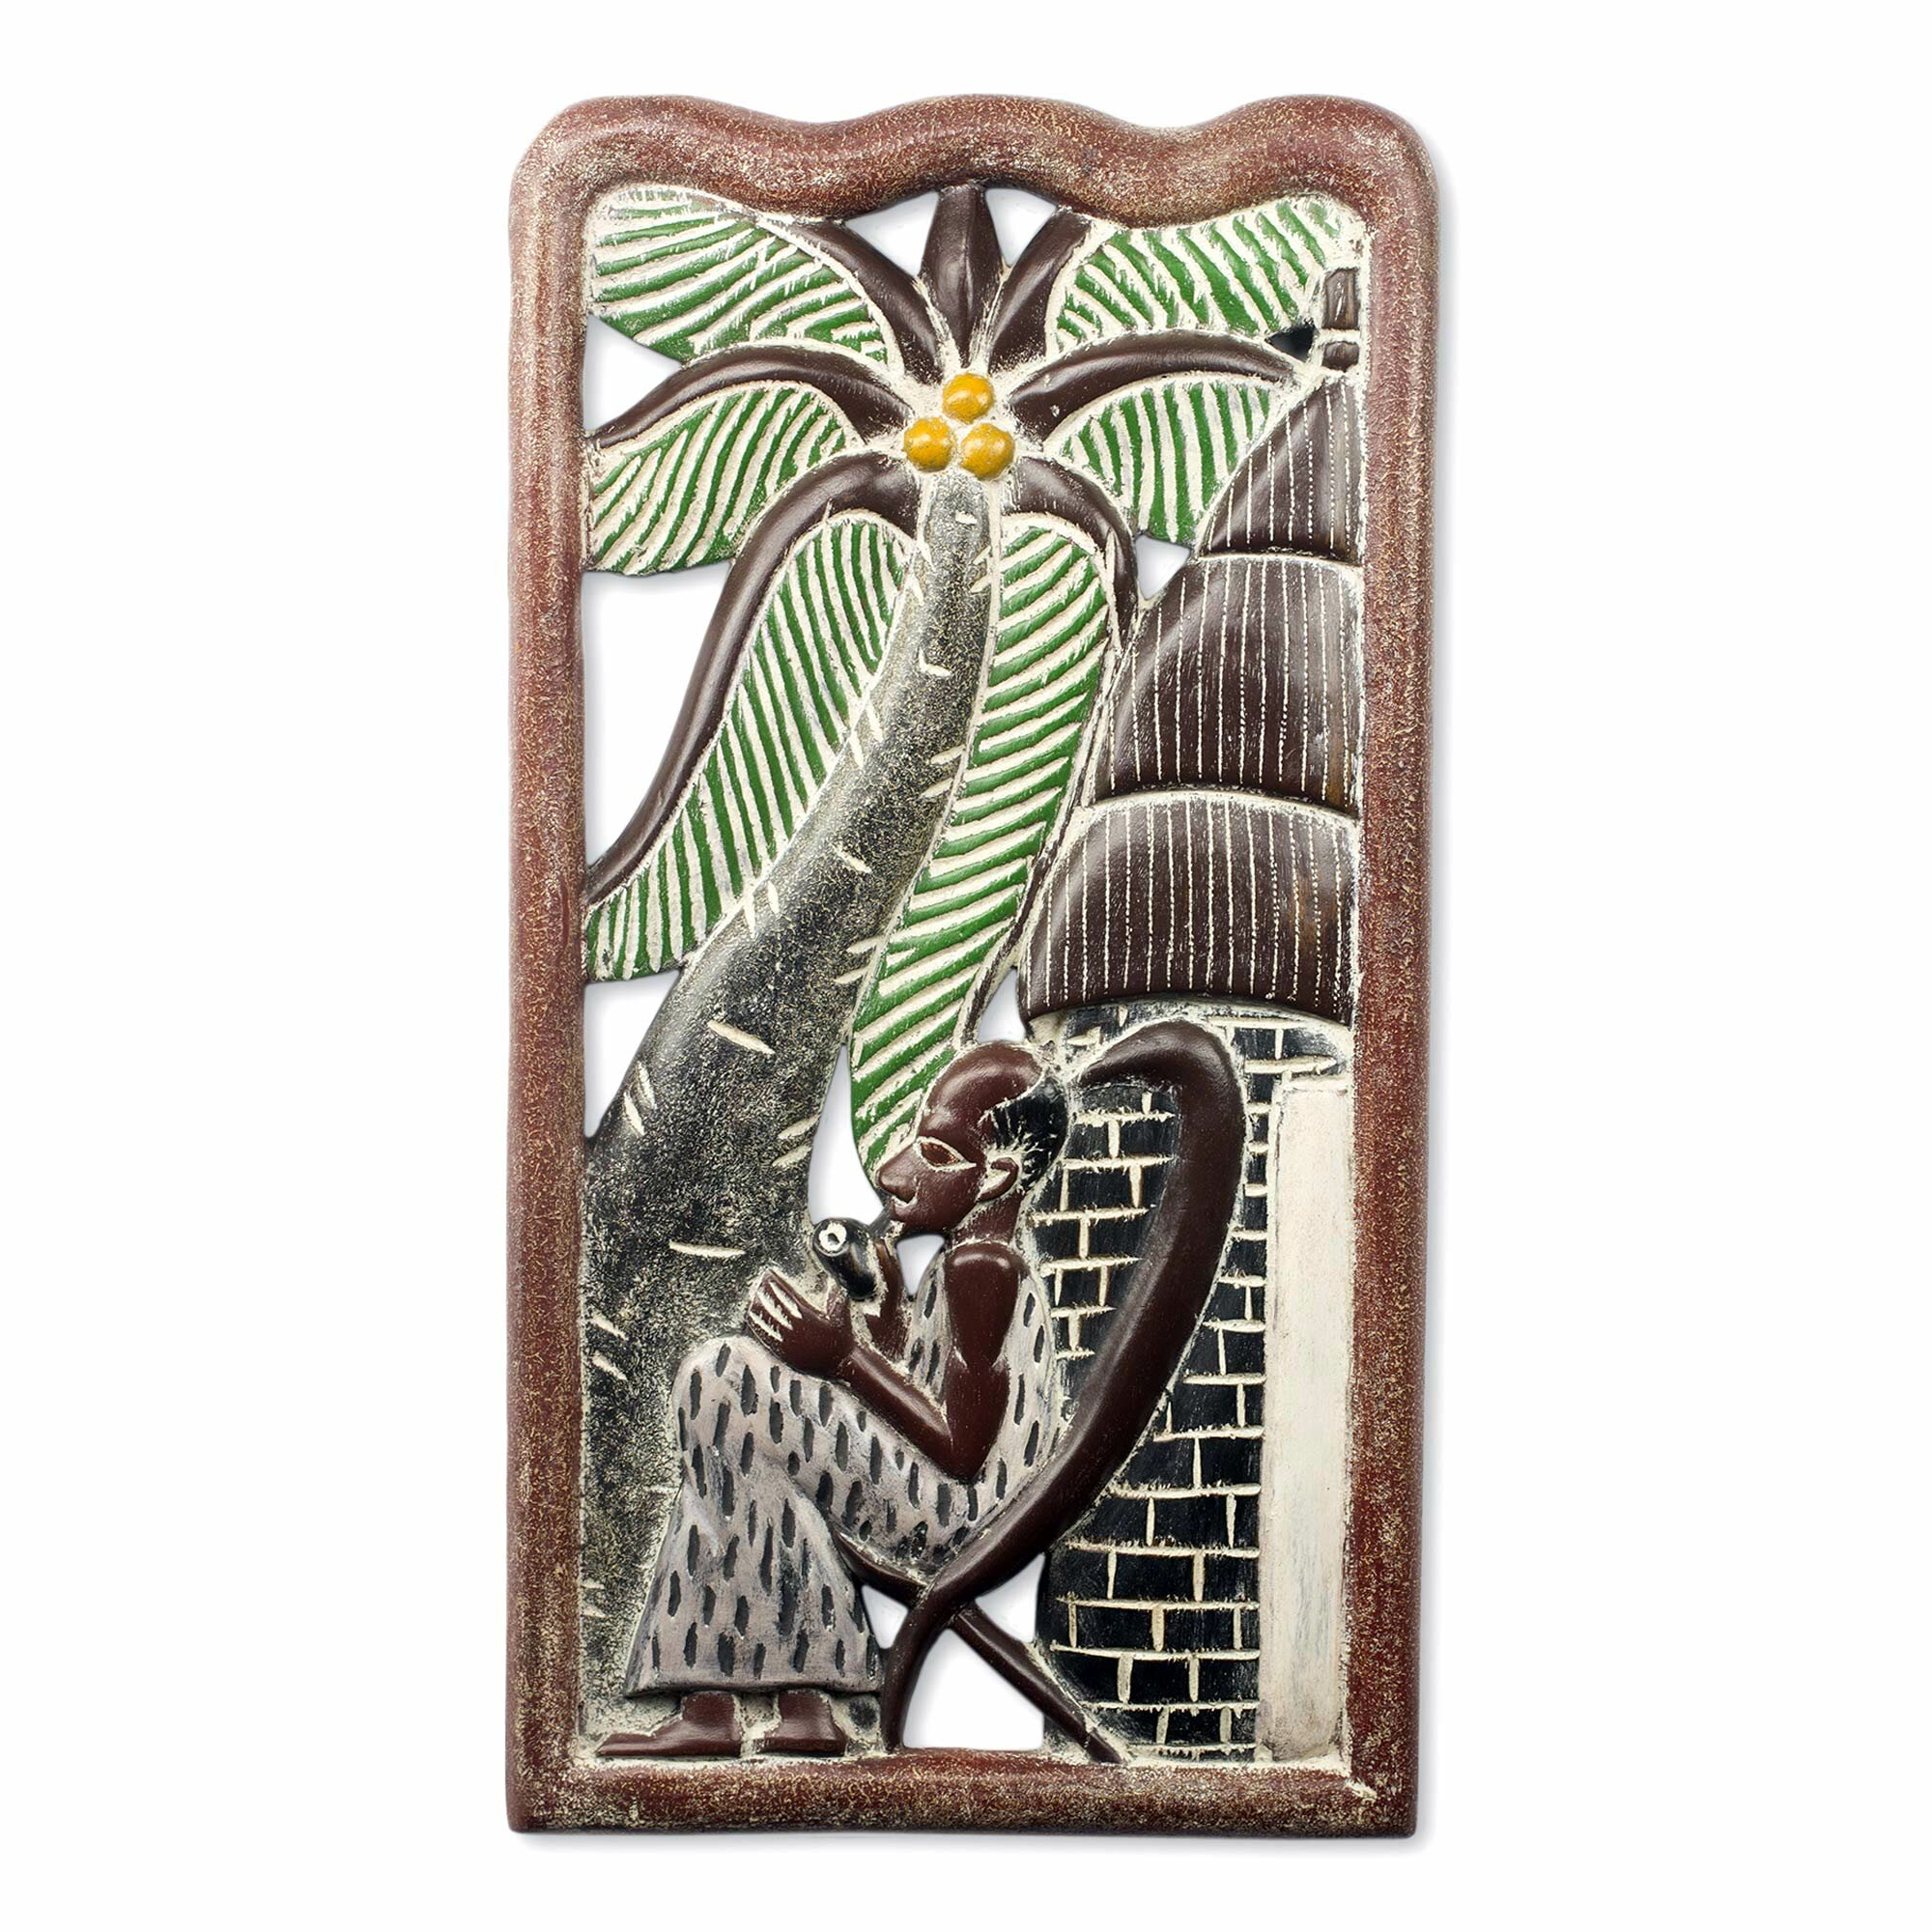 Novica rejuvenate handmade sculpture carved from wood for African wall decoration